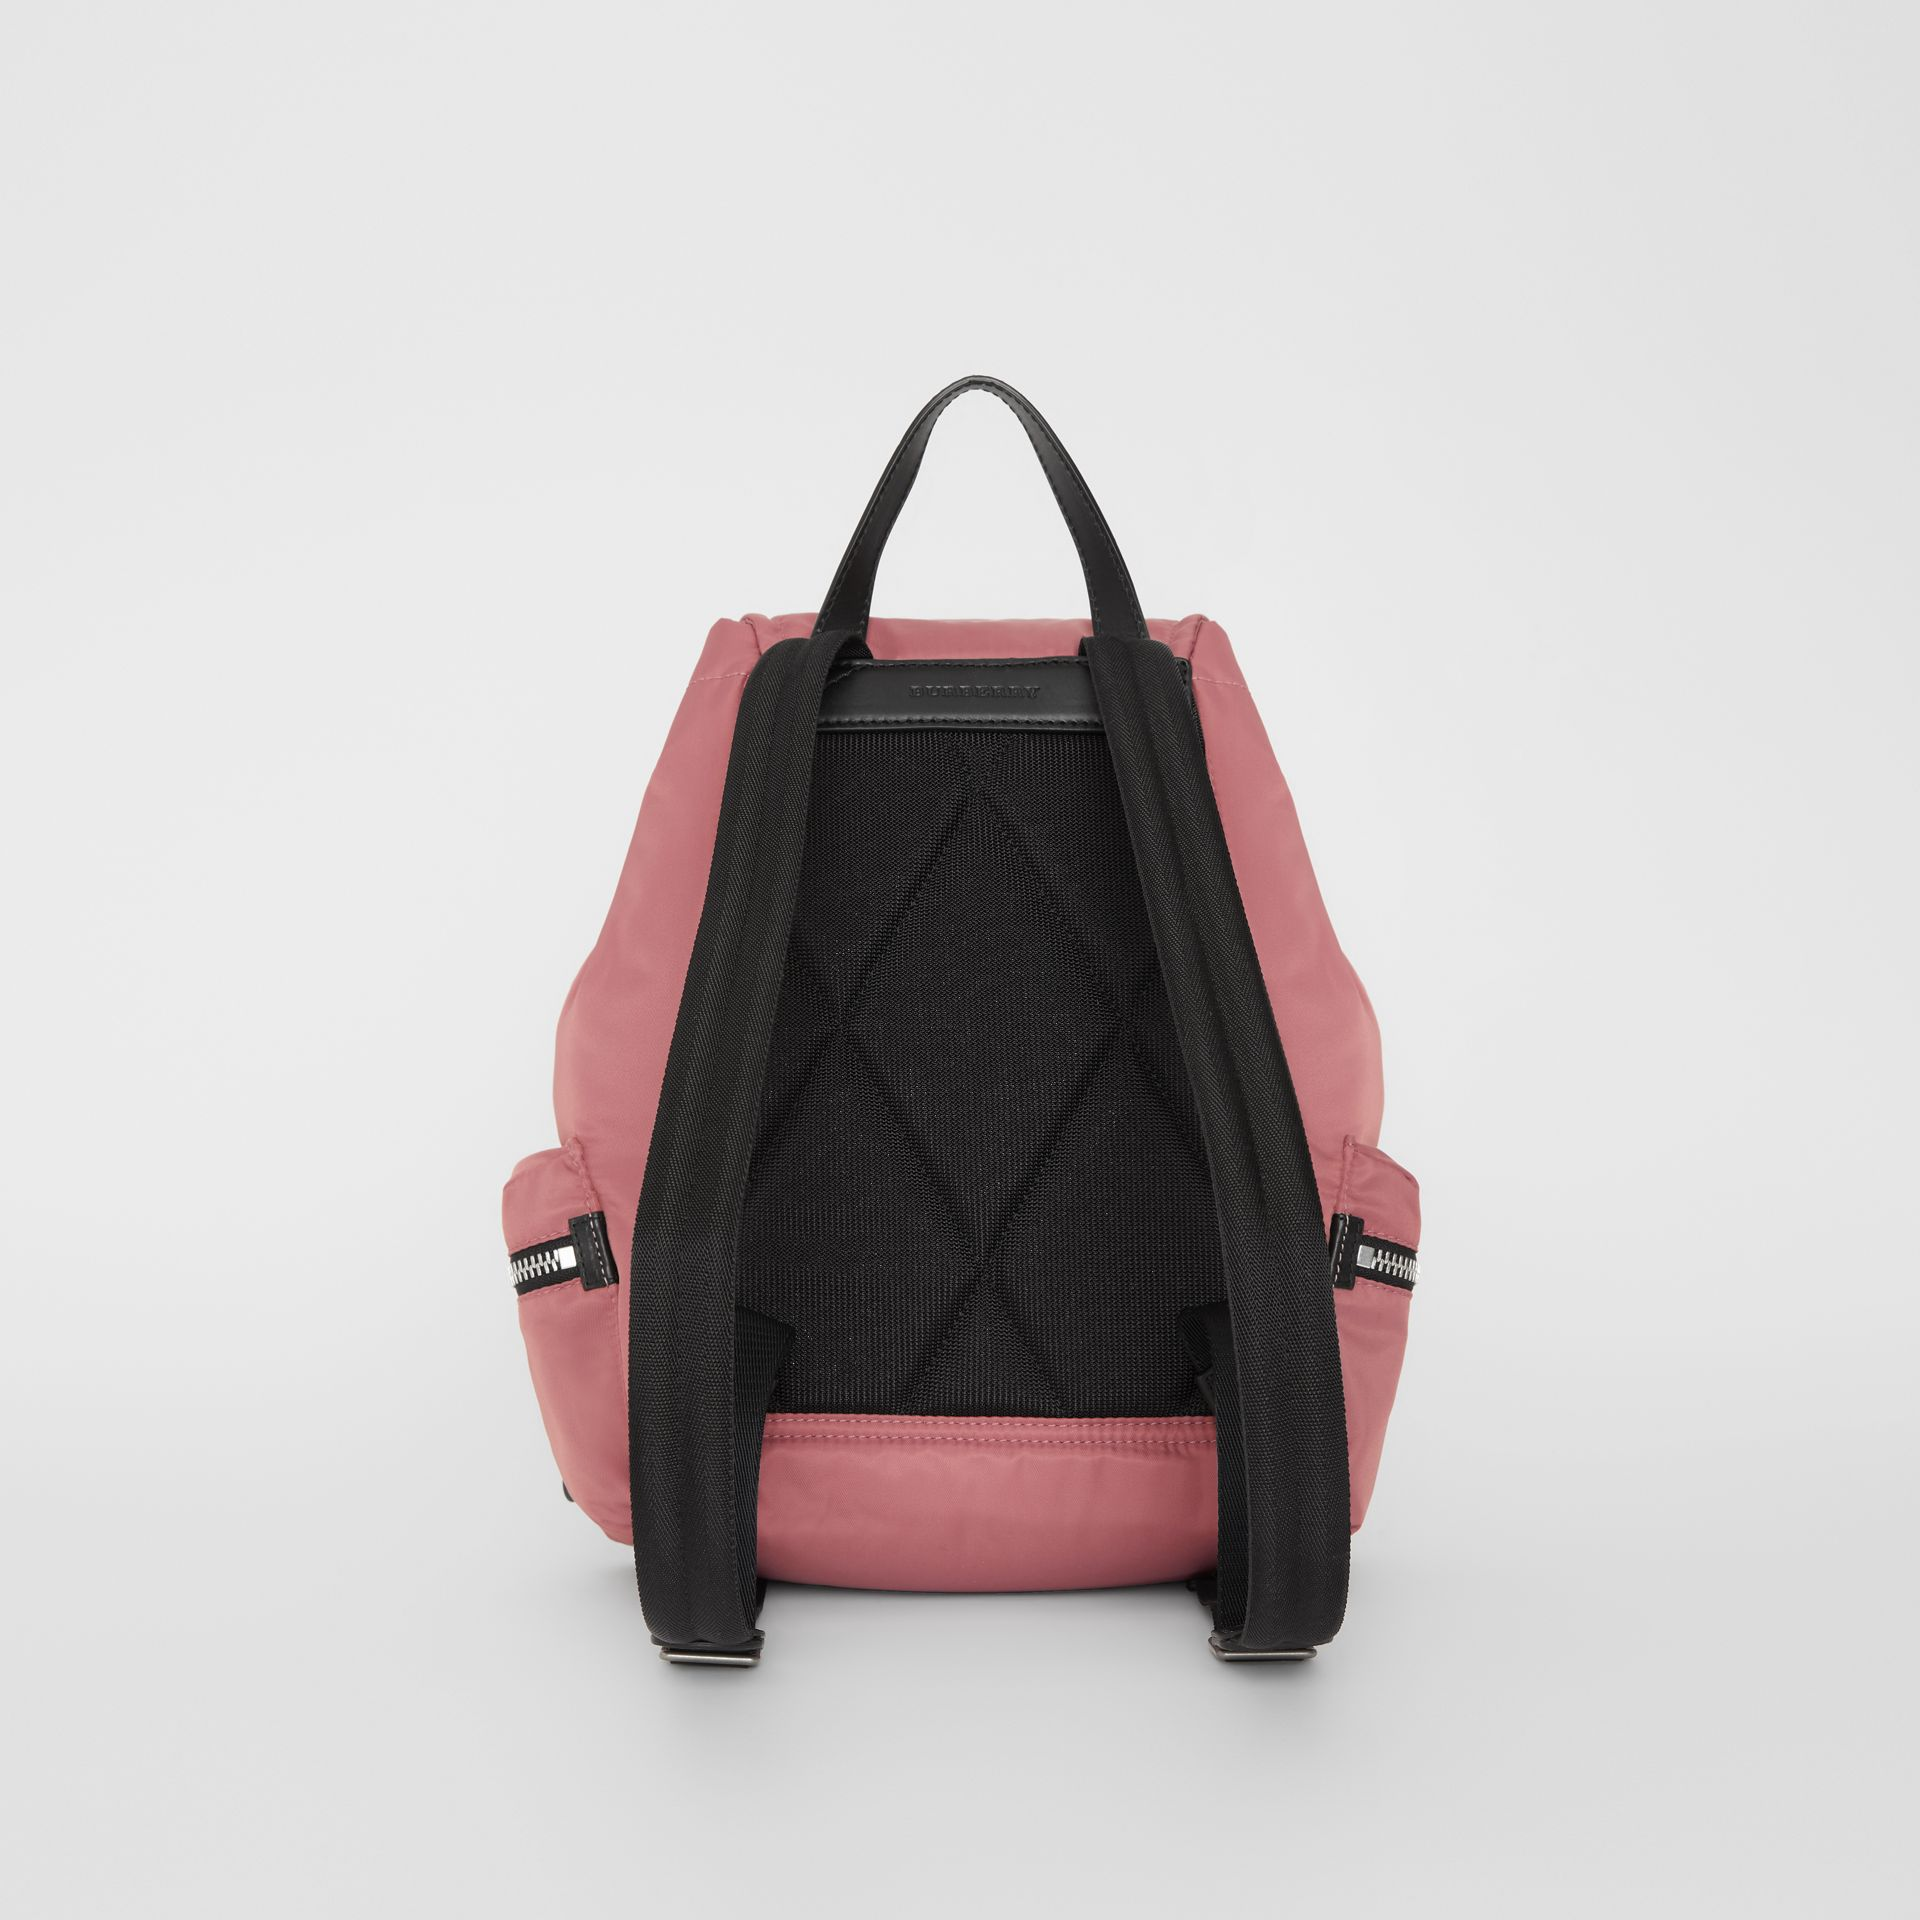 Sac The Rucksack moyen en nylon matelassé et cuir (Rose Mauve) - Femme | Burberry - photo de la galerie 7